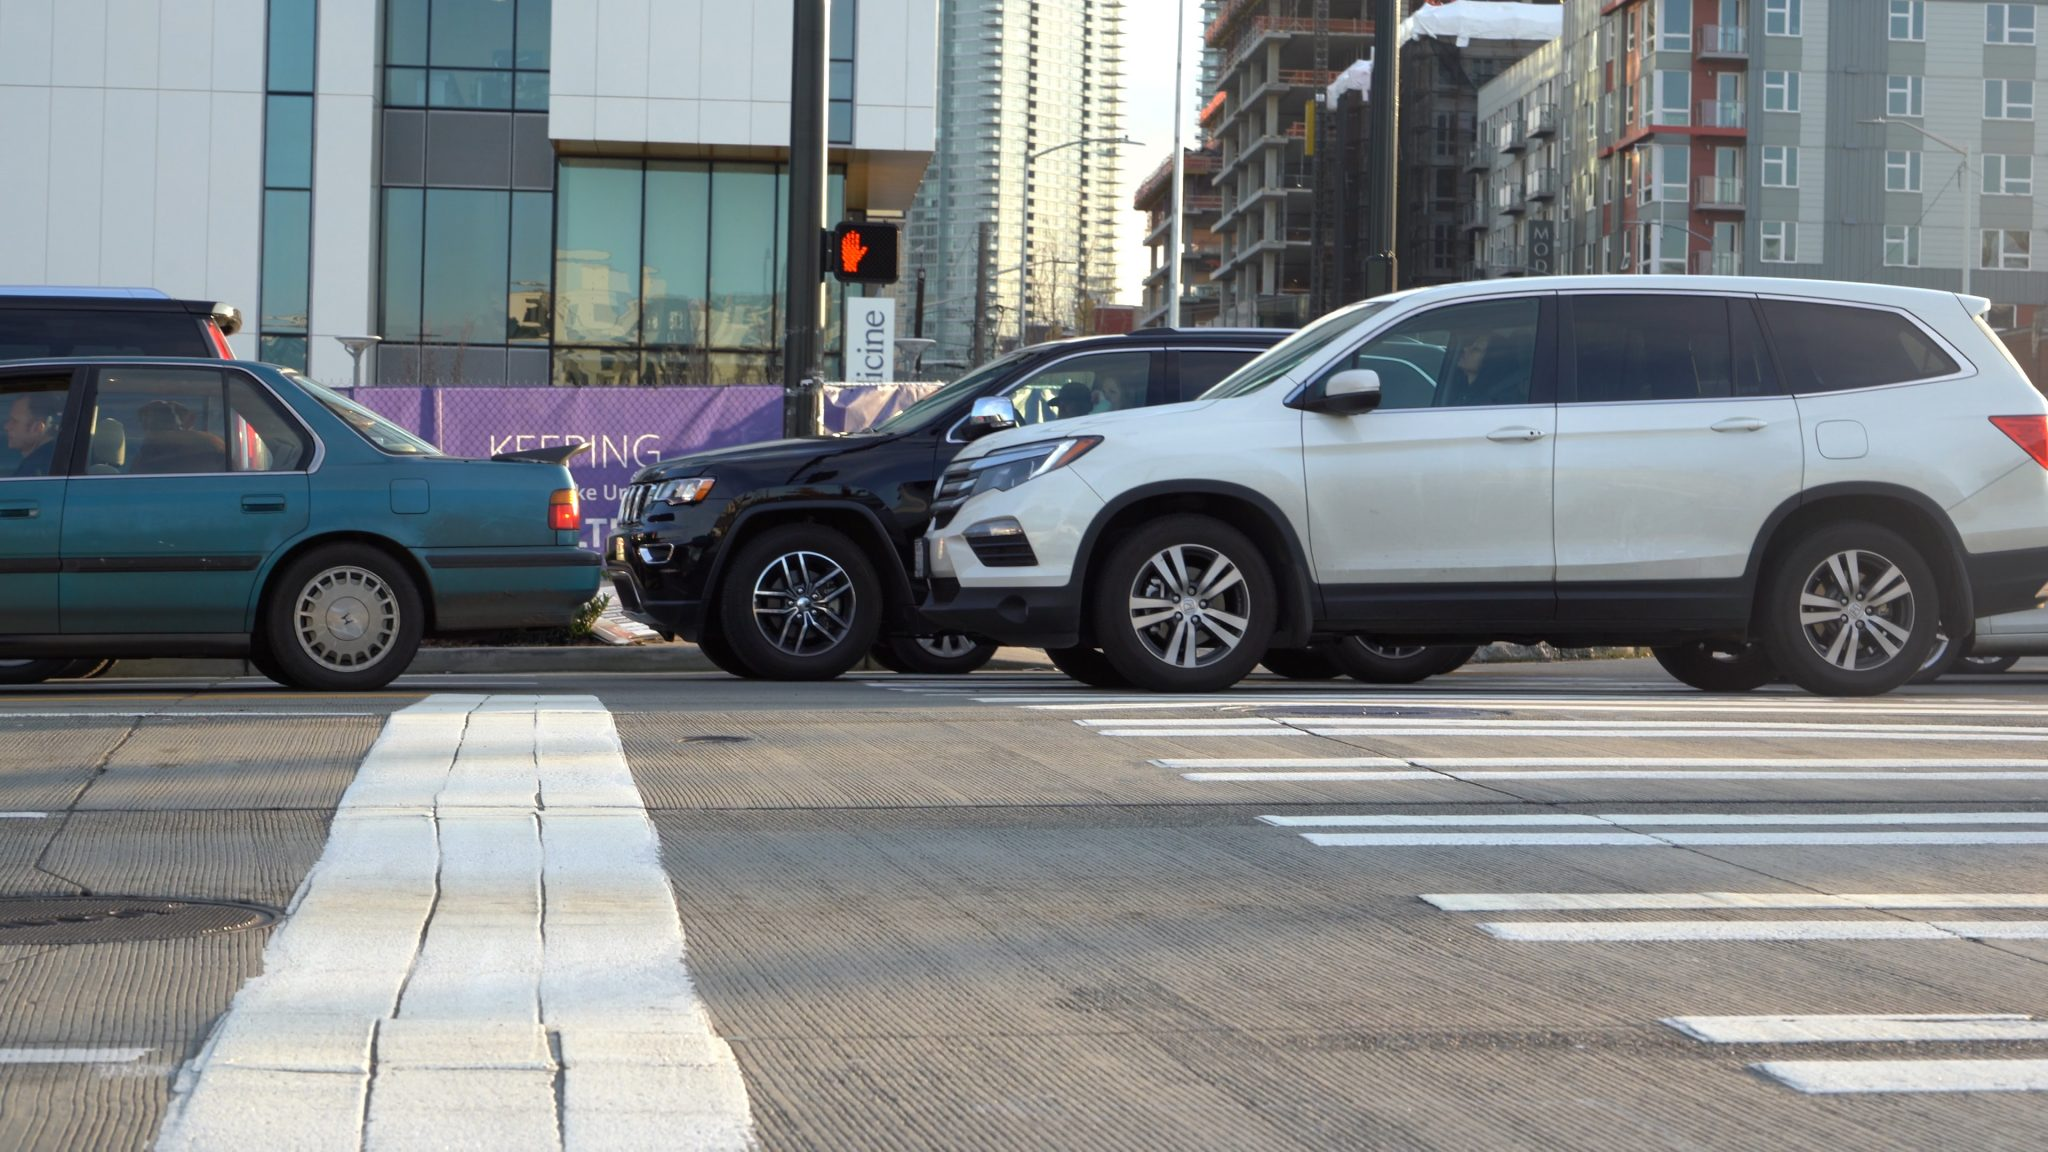 Several cars blocking the curb ramp at the other end of a crosswalk.